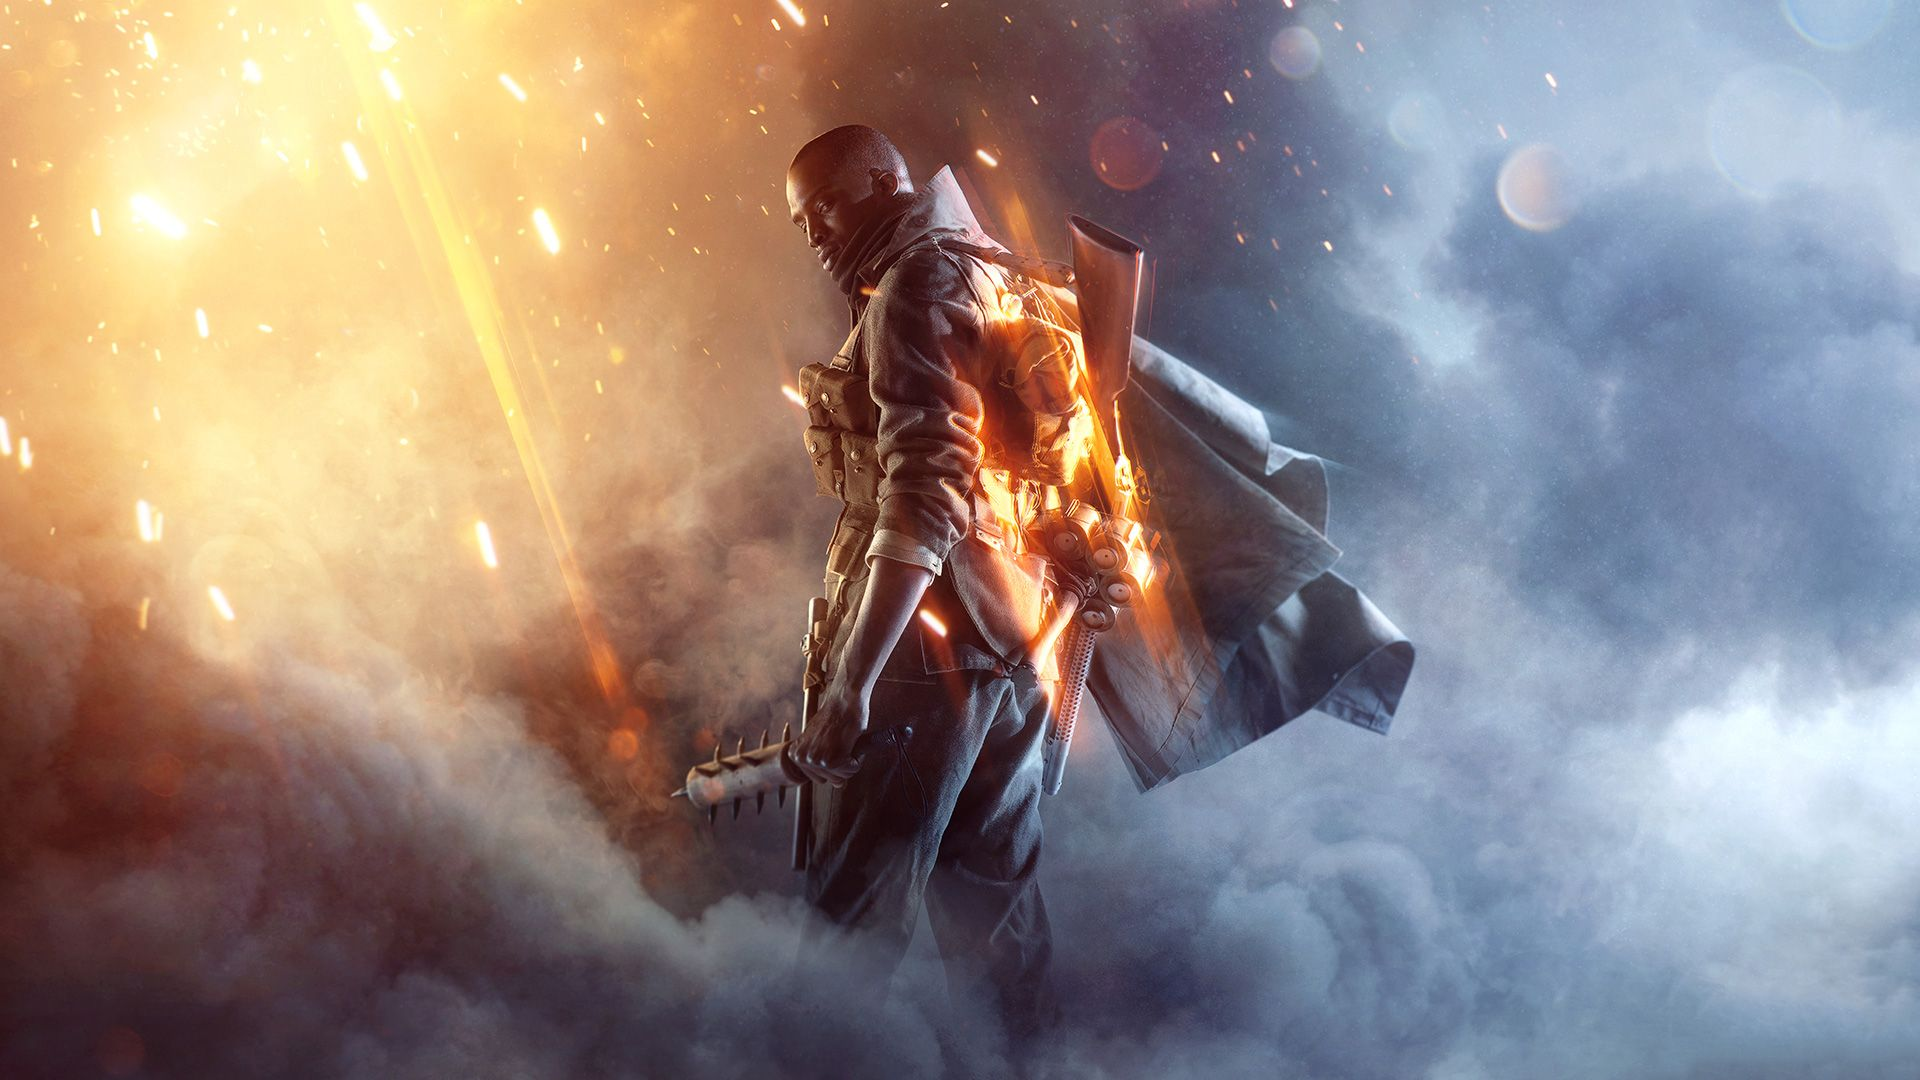 1920x1080 Top 20 Upcoming Games Wallpapers Pack W O Logos R Wallpapers Battlefield 1 Battlefield Hd Wallpaper